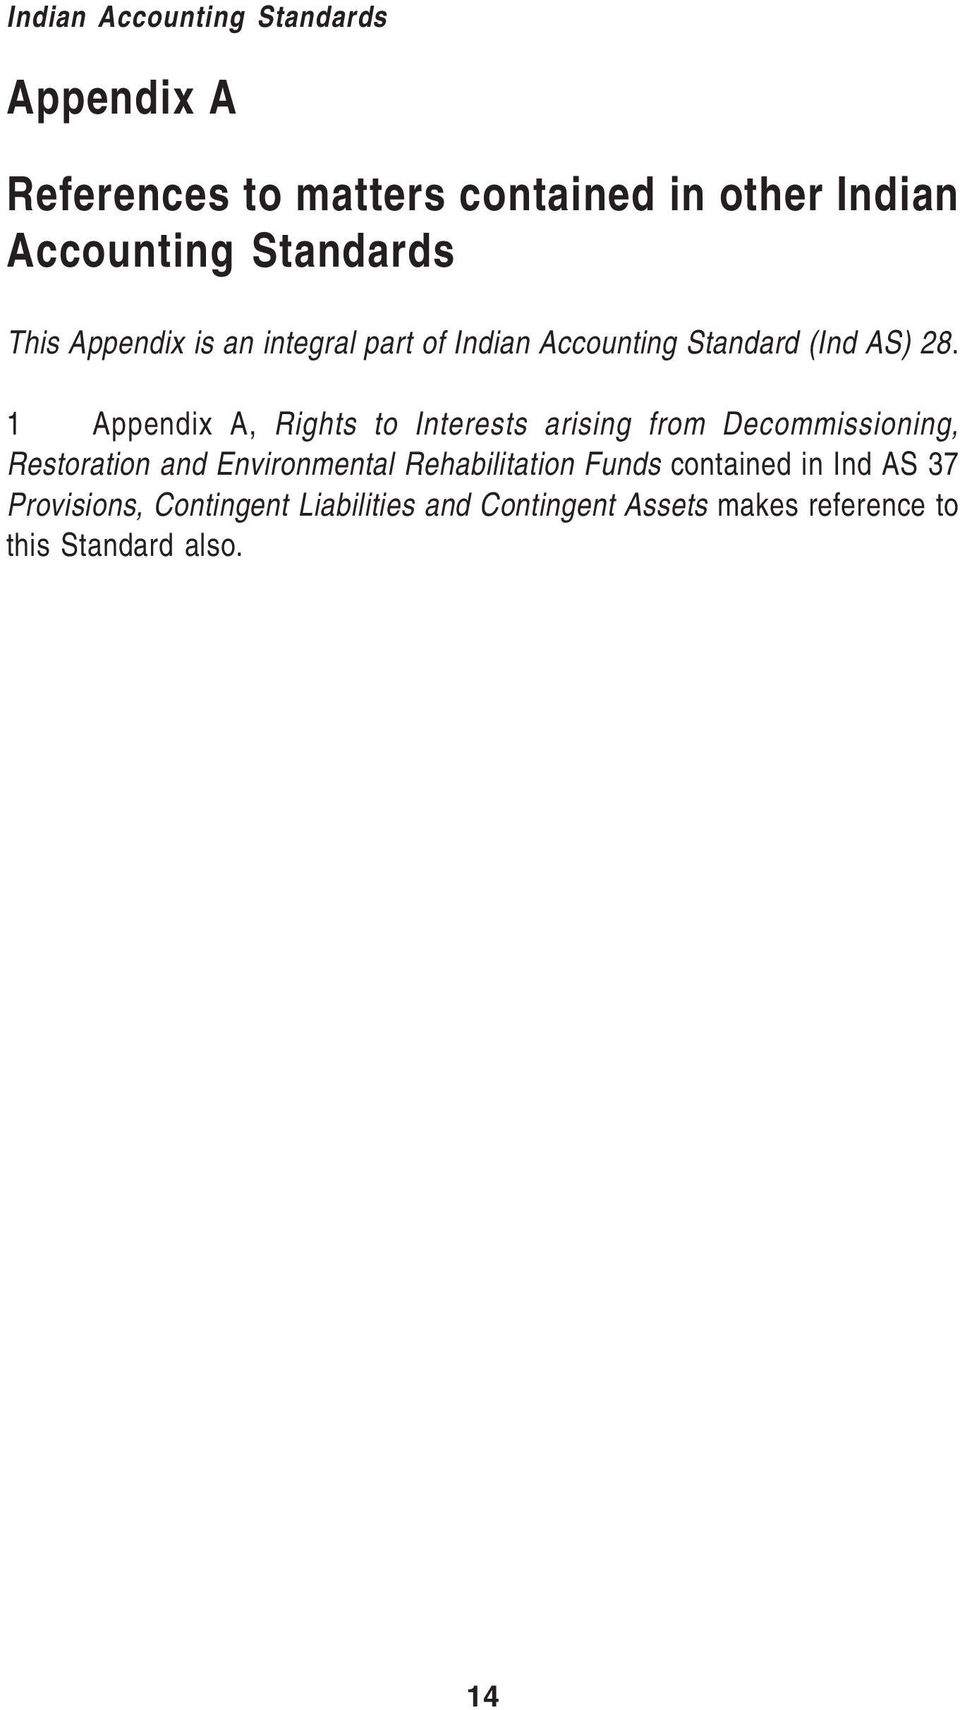 1 Appendix A, Rights to Interests arising from Decommissioning, Restoration and Environmental